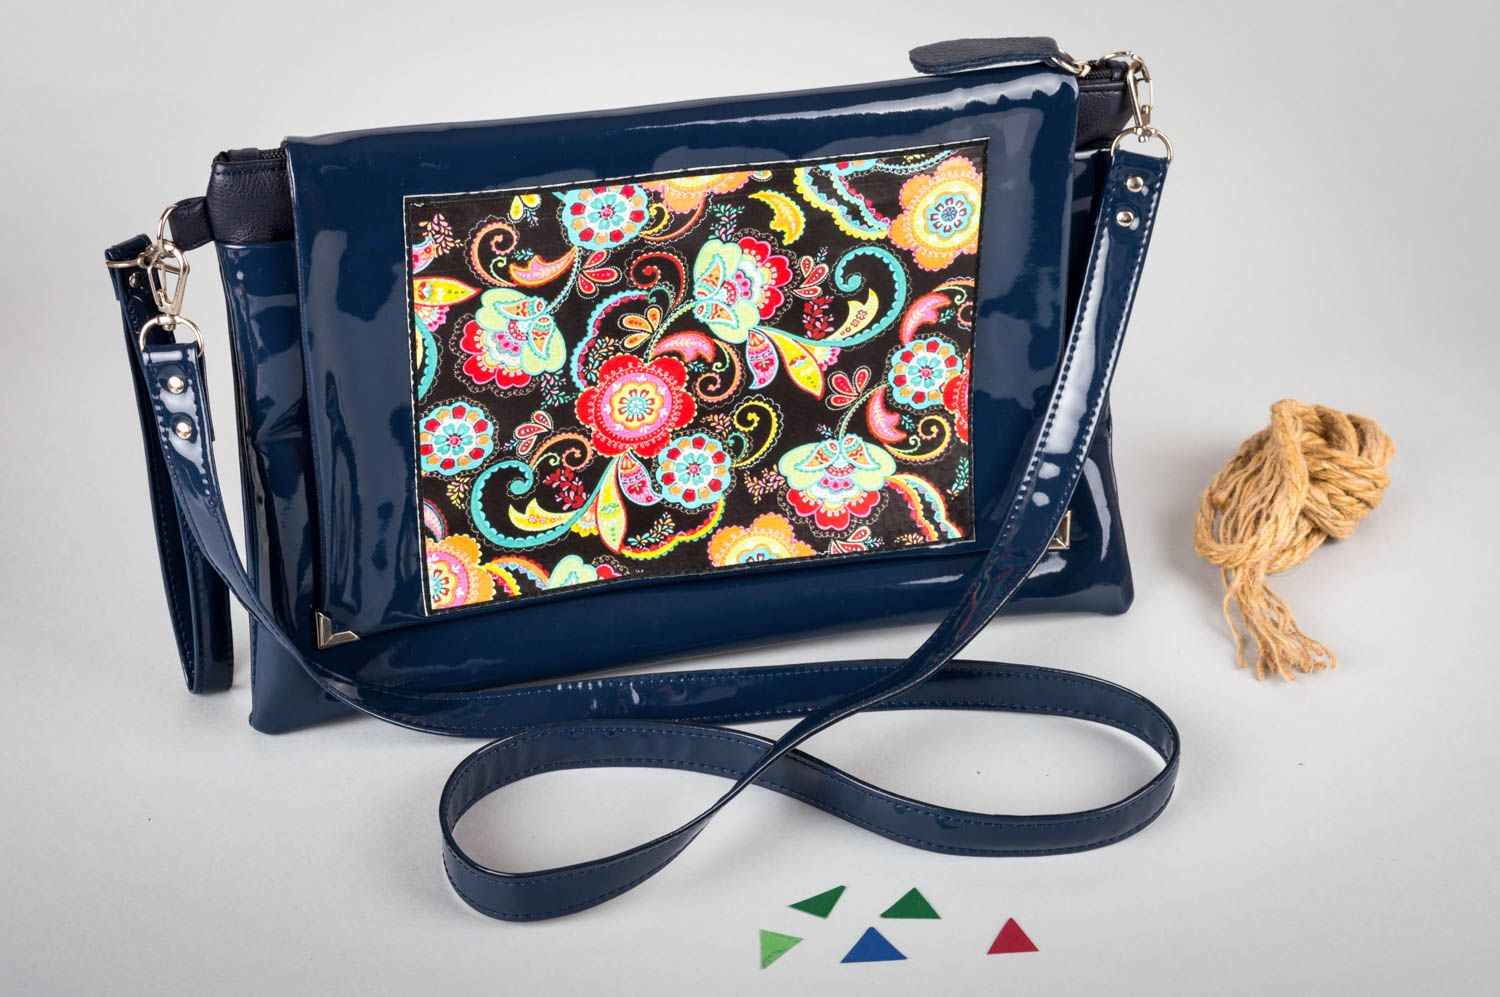 Bag made of artificial leather handmade lacquered clutch colorful accessories photo 2